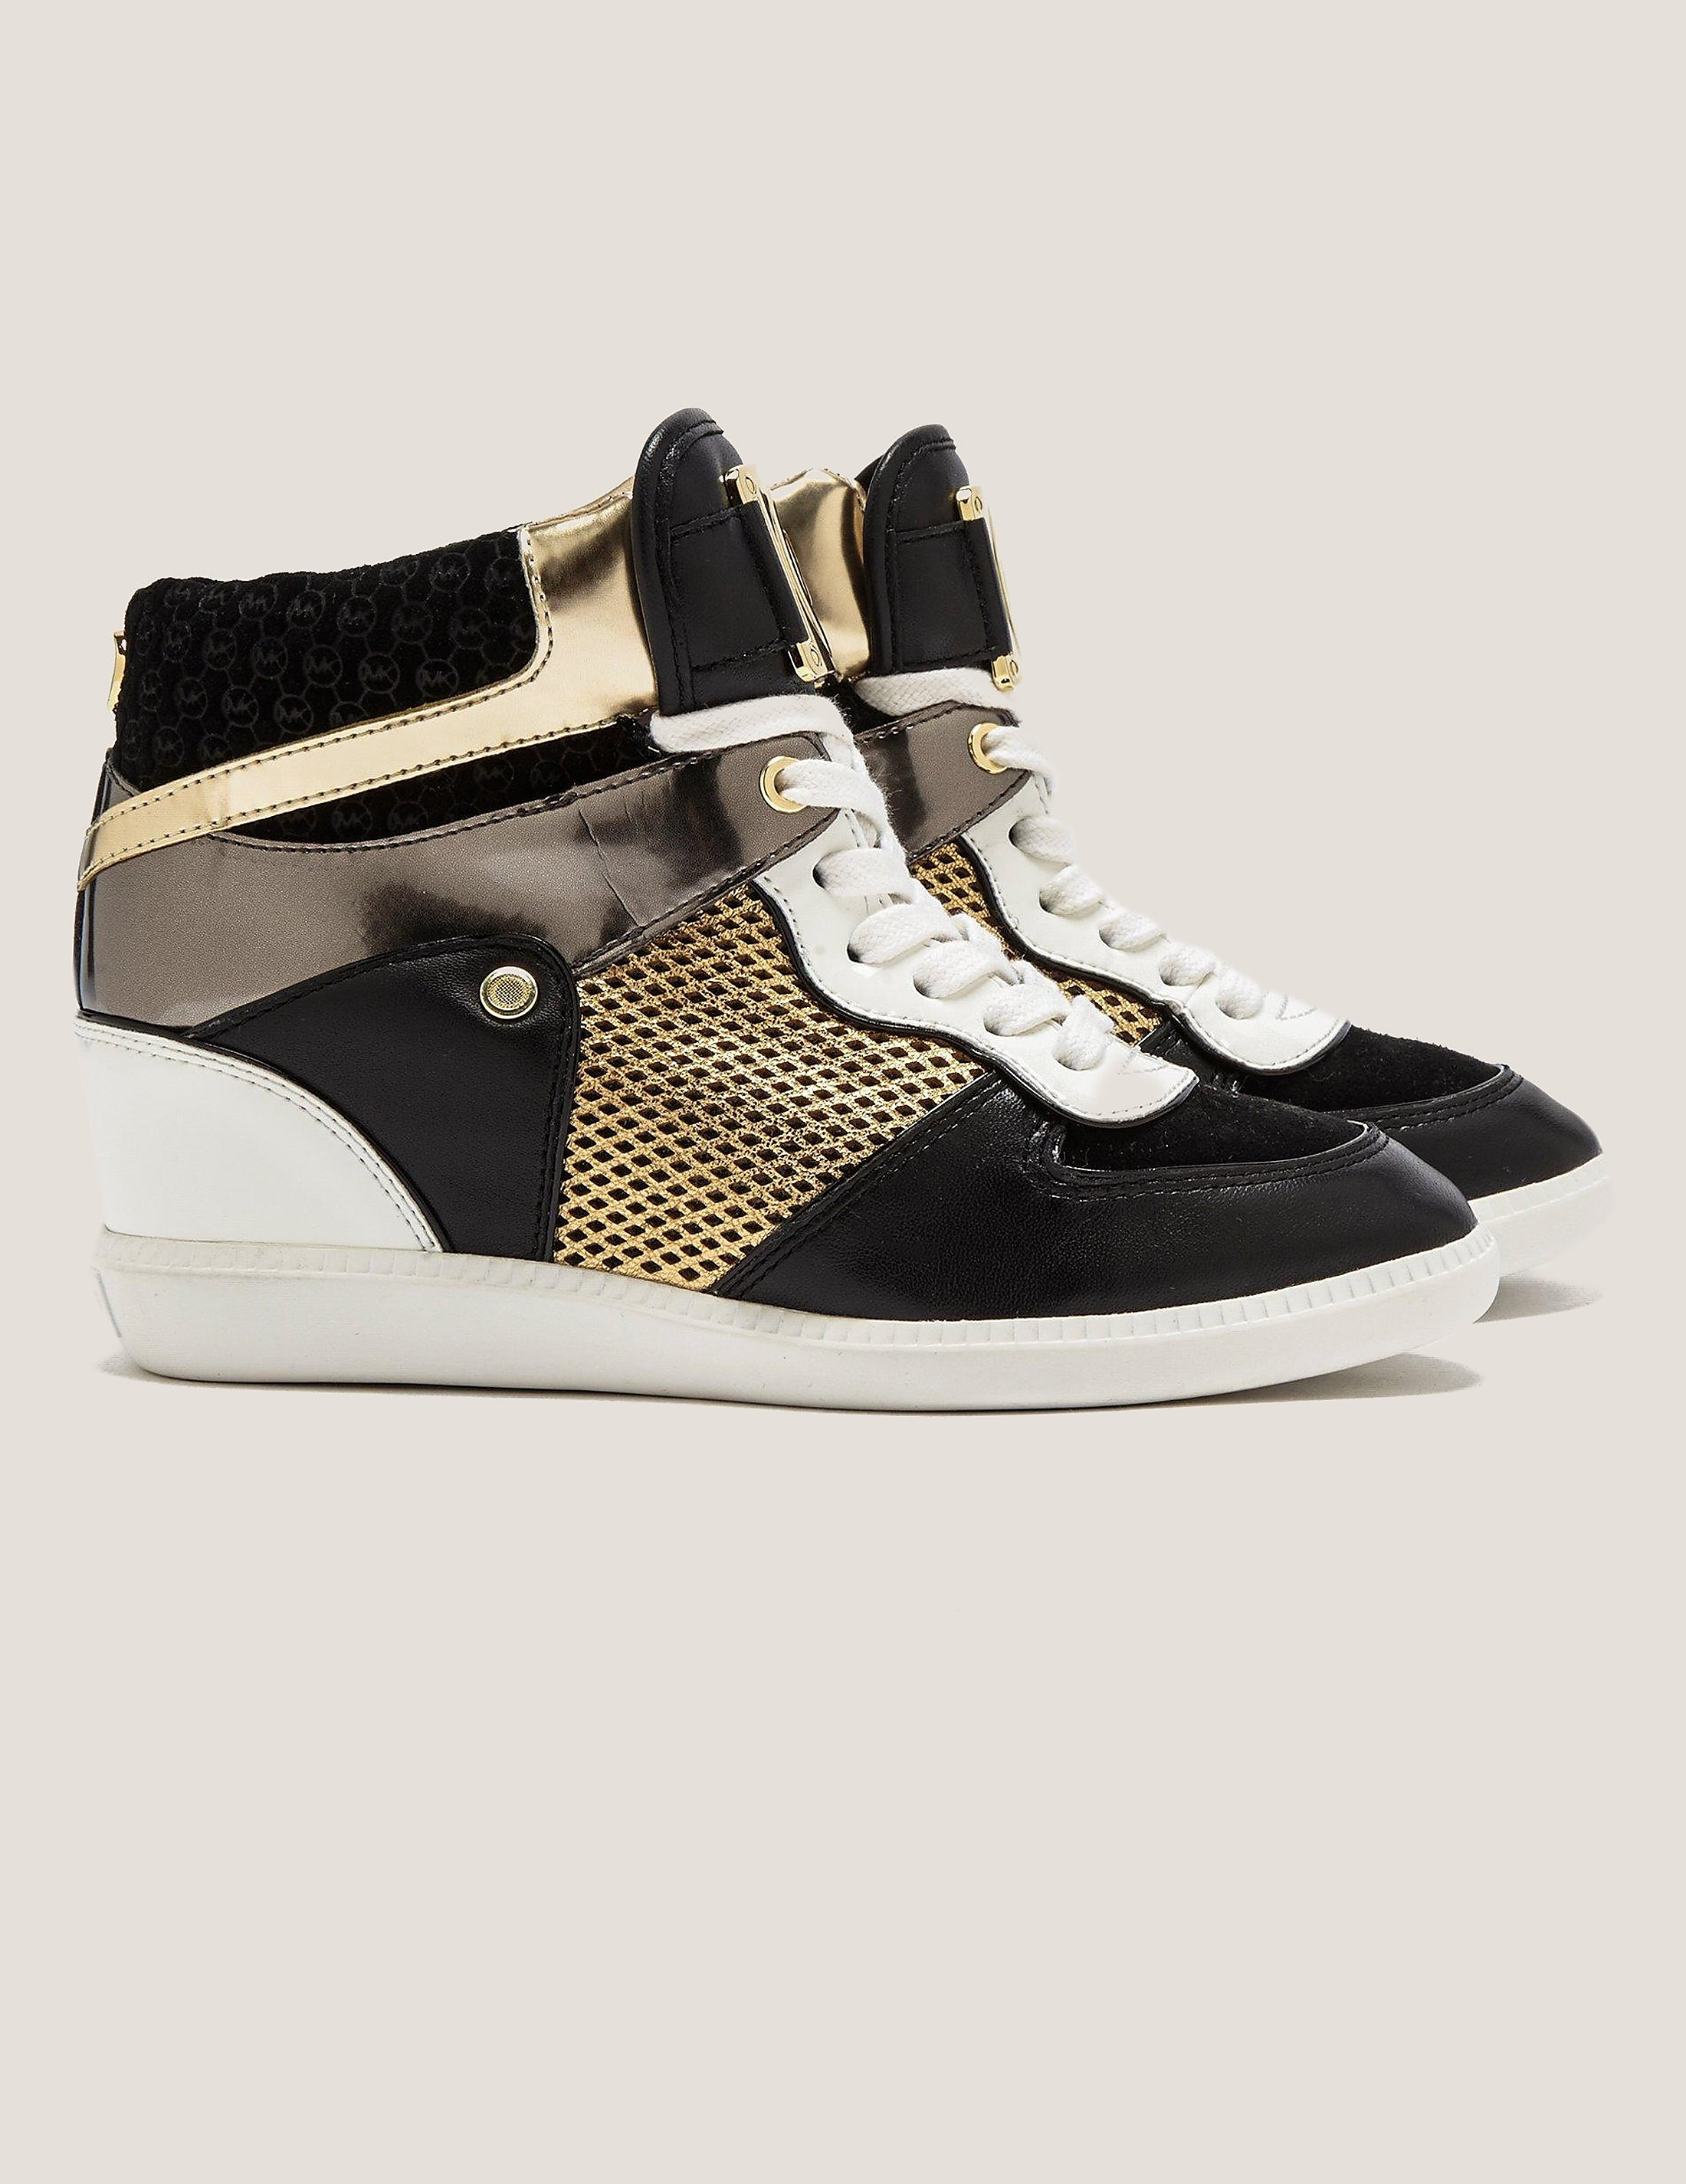 Michael Kors Nikko High Top Sport